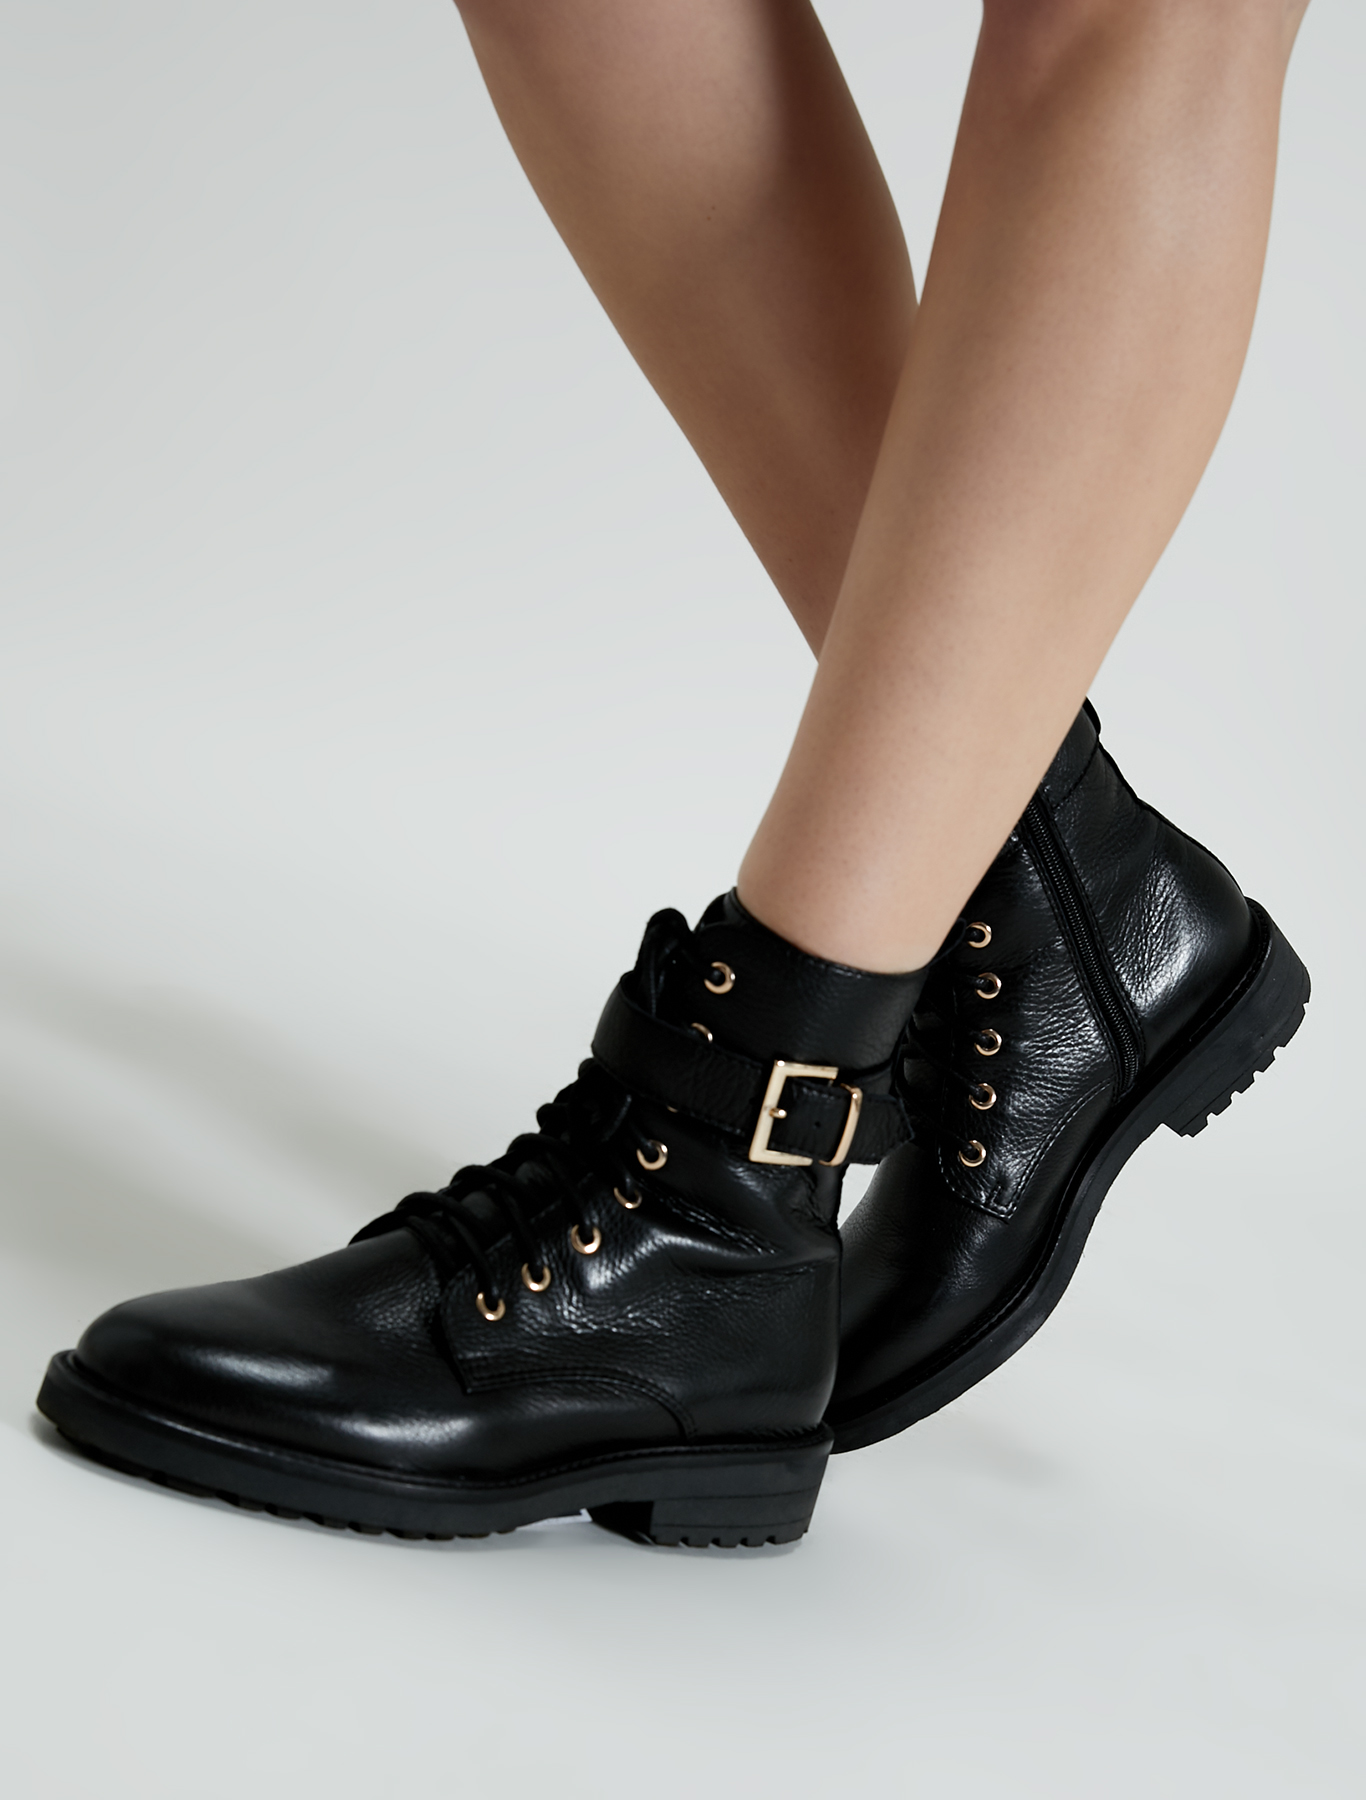 Leather combat boots with strap - black - pennyblack